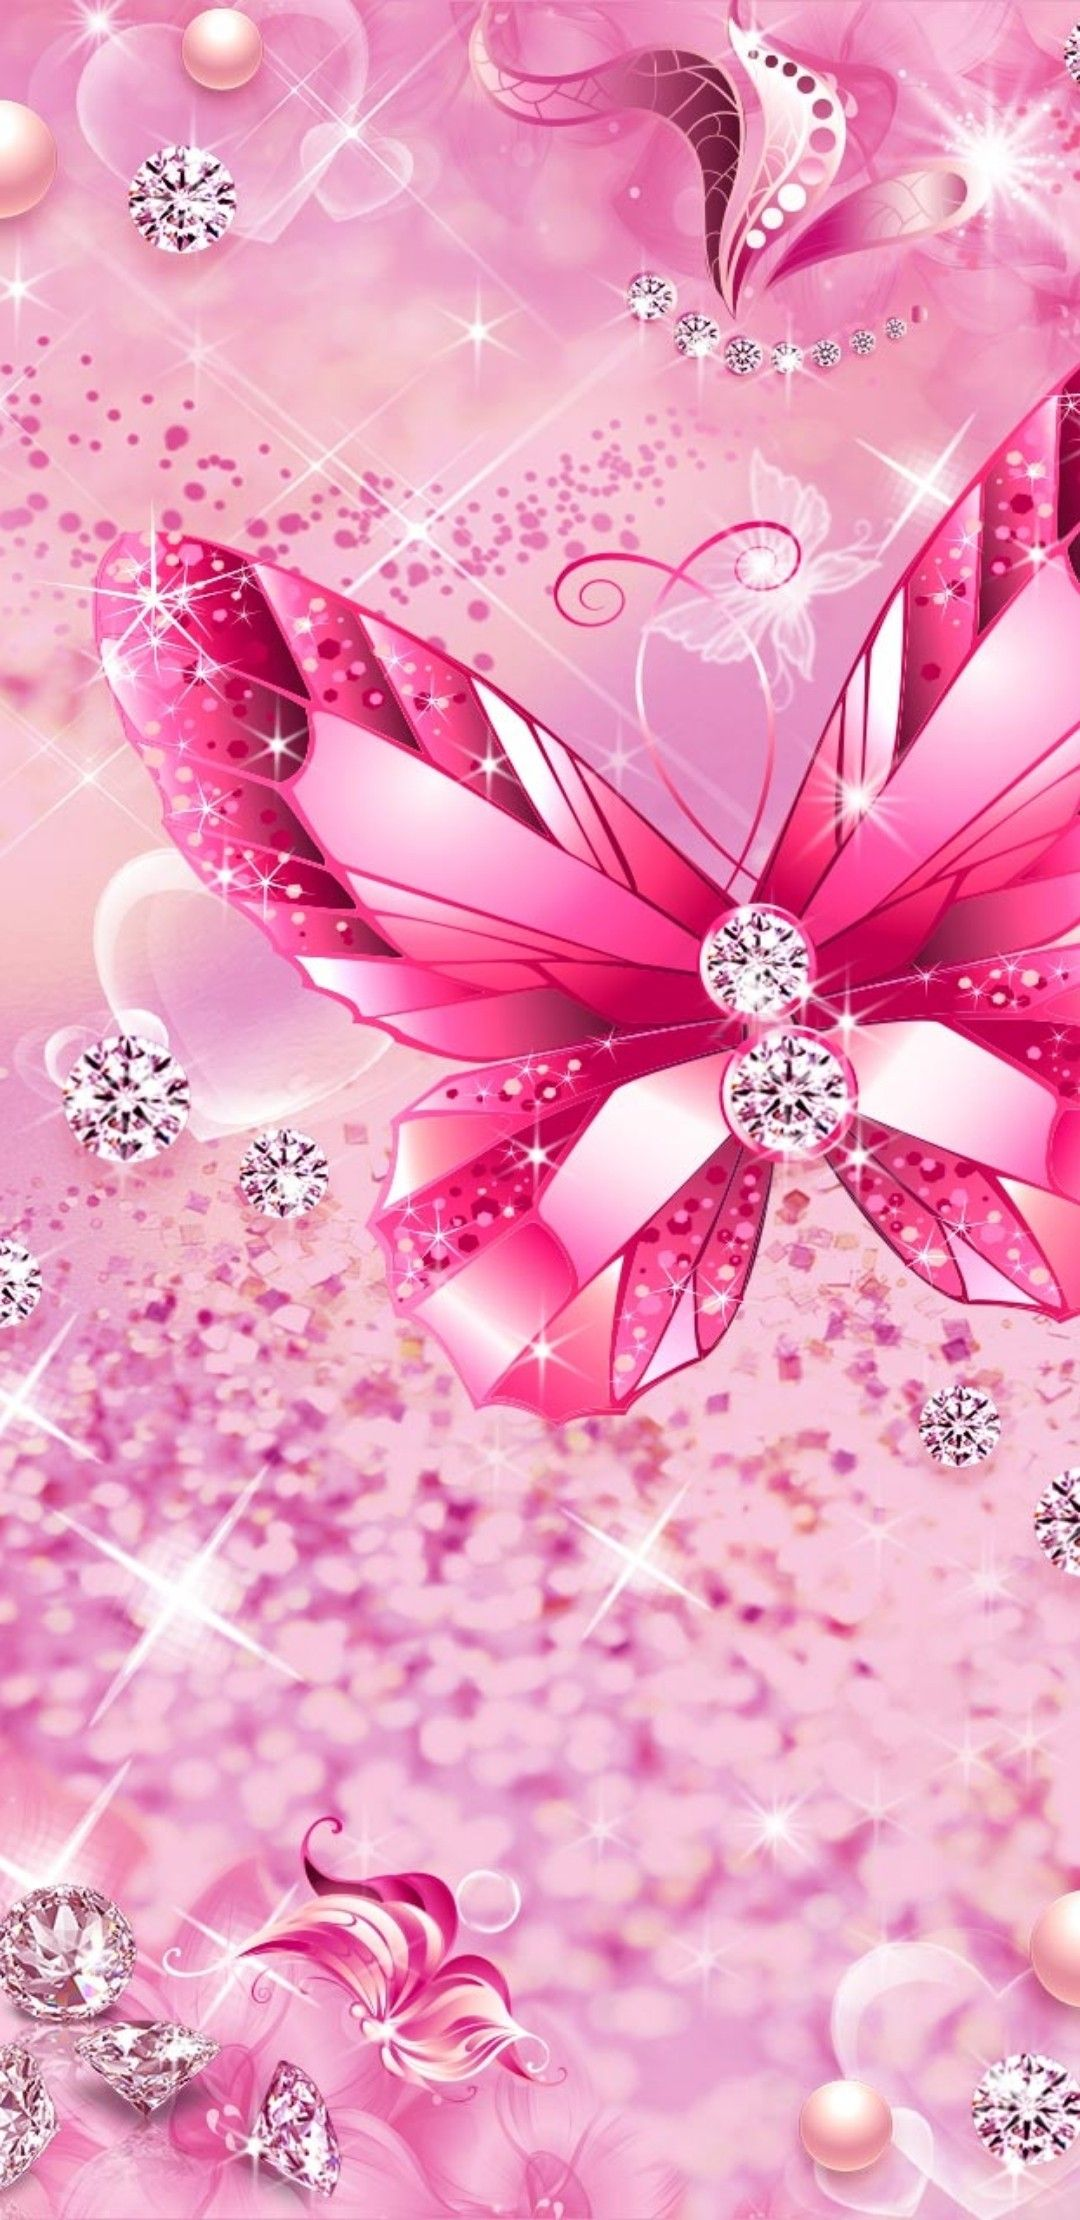 Pink Butterfly phone wallpaper Bling wallpaper, Pink